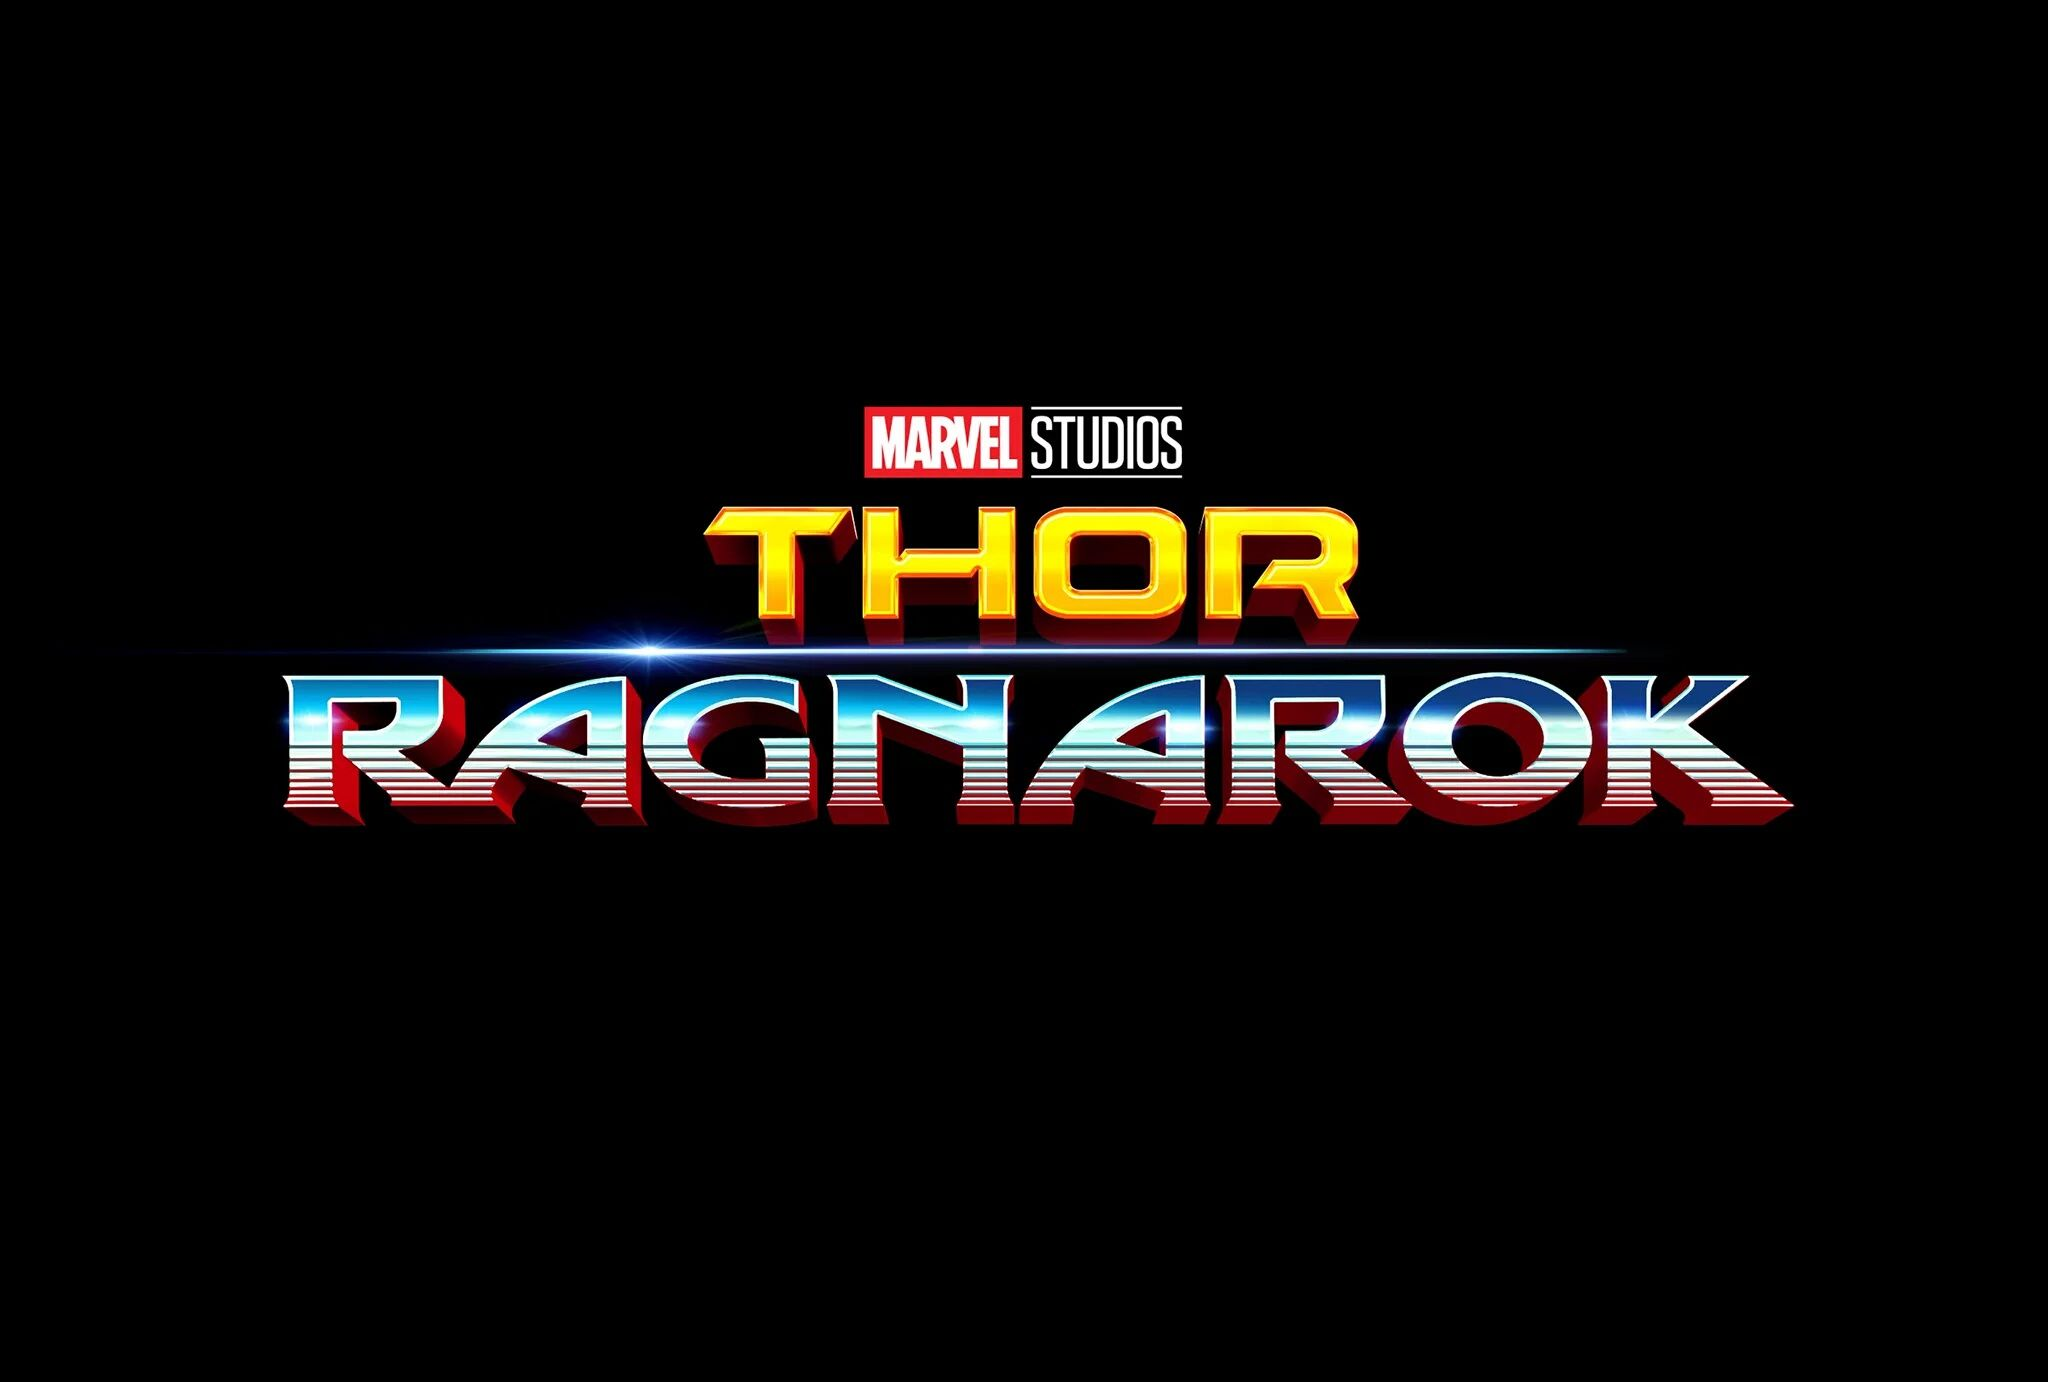 thor ragnarok s new logo is even more 80s than before thor ragnarok s new logo is even more